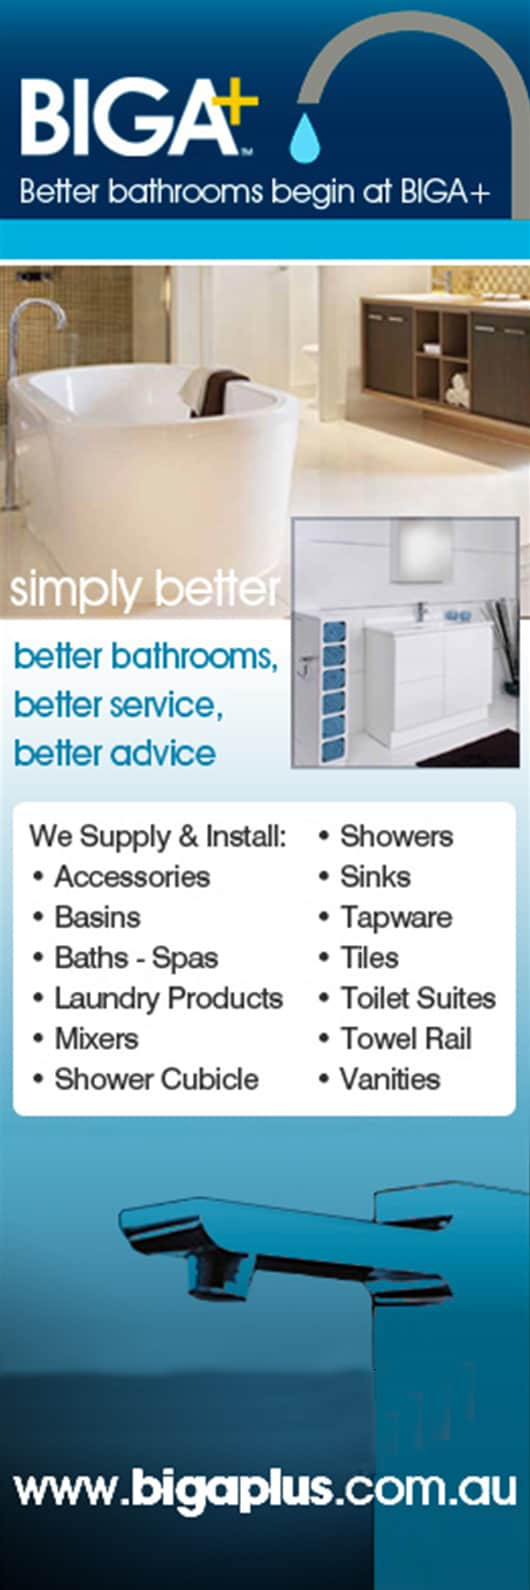 BIGA Plus Penrith - Bathroom Accessories & Equipment - 127 Batt St ...